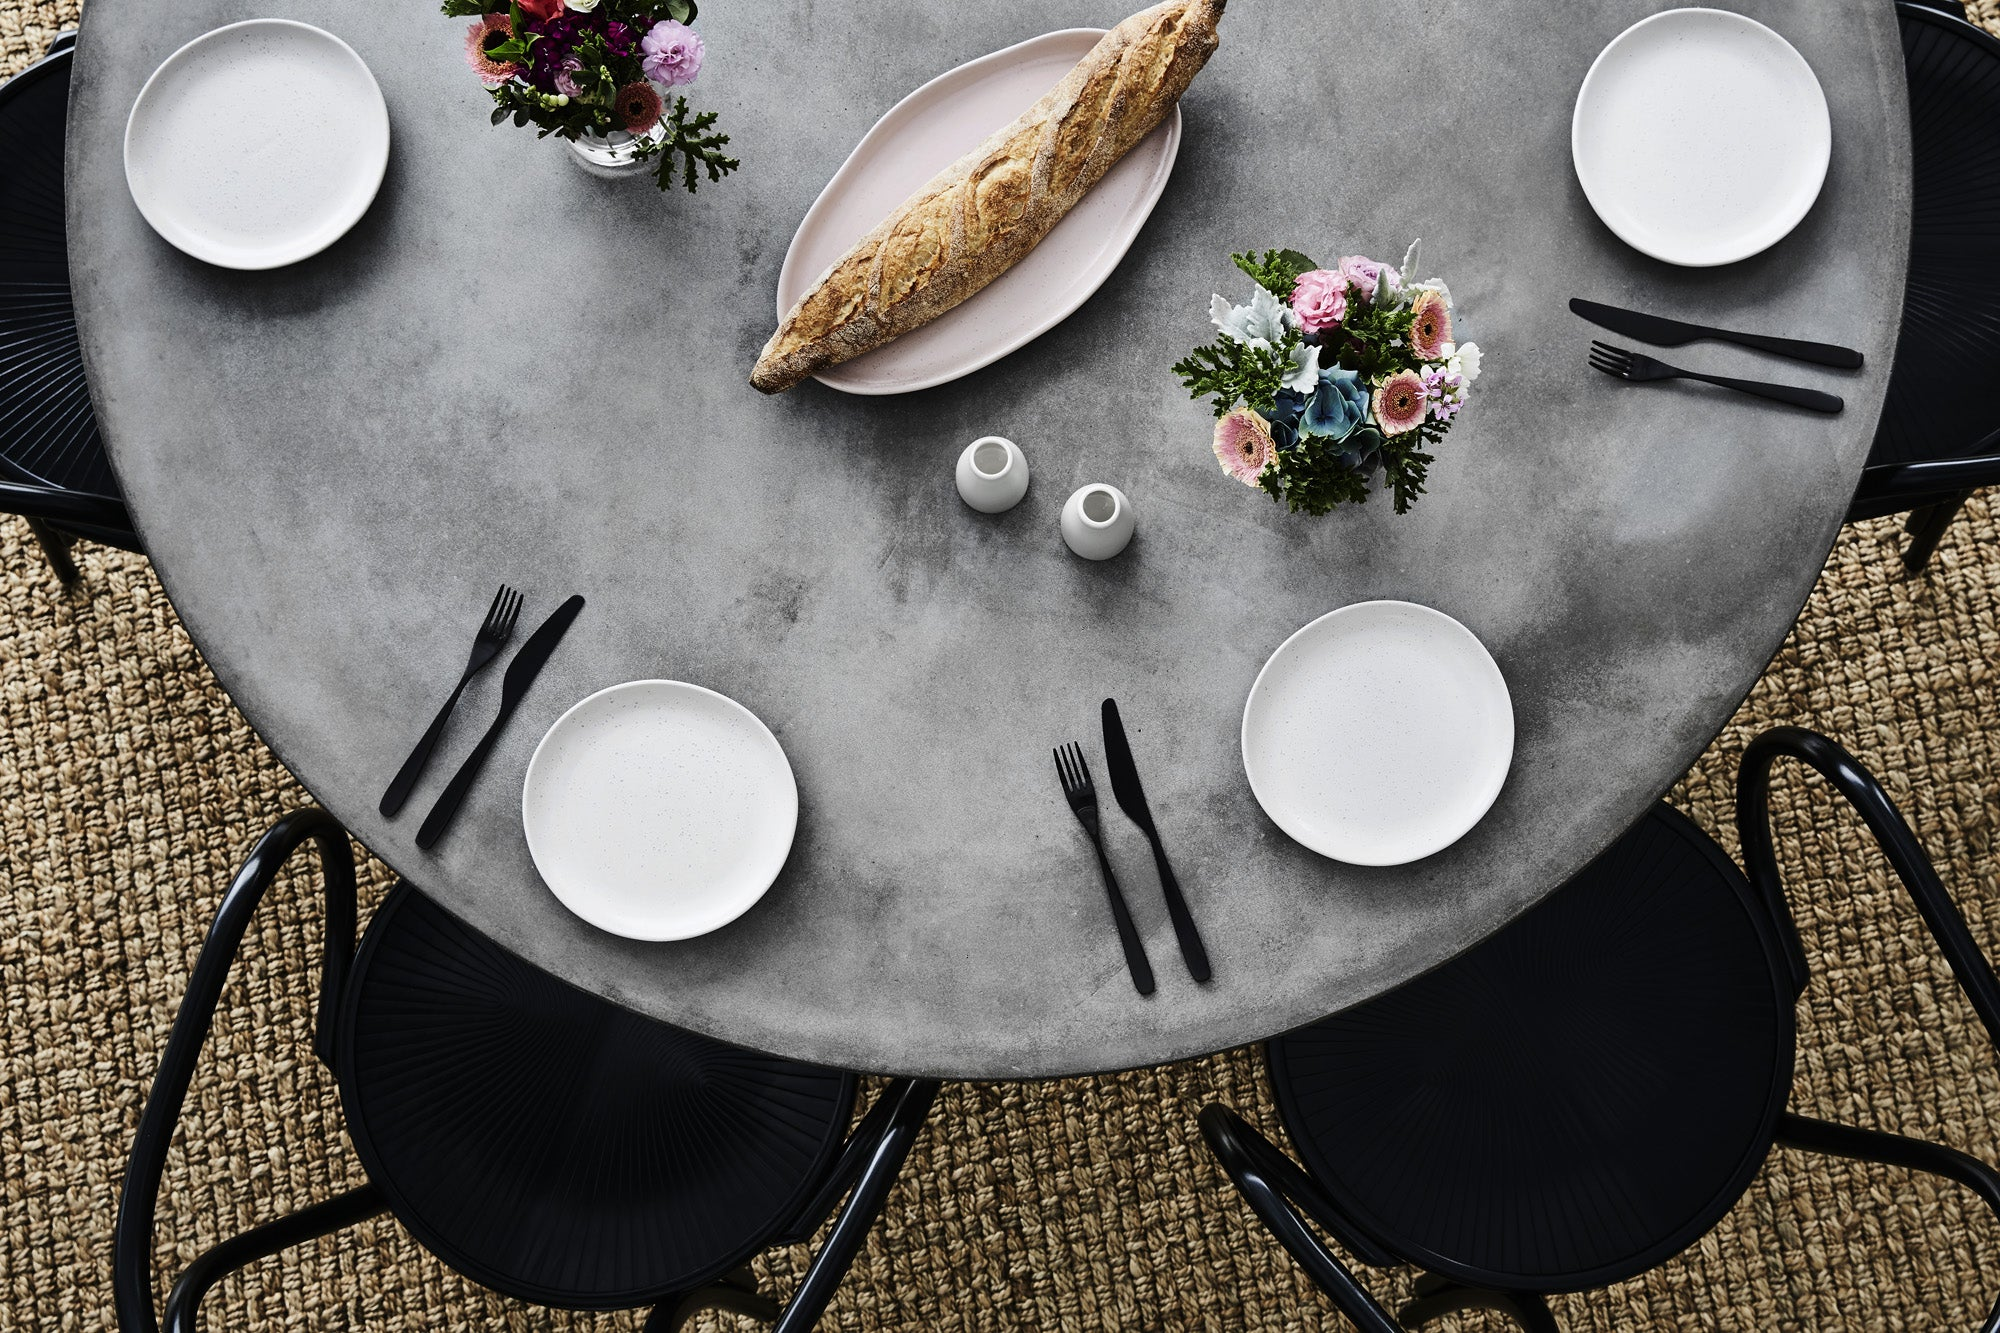 Round Concrete Dining Table For Entertainment & Family Dinners